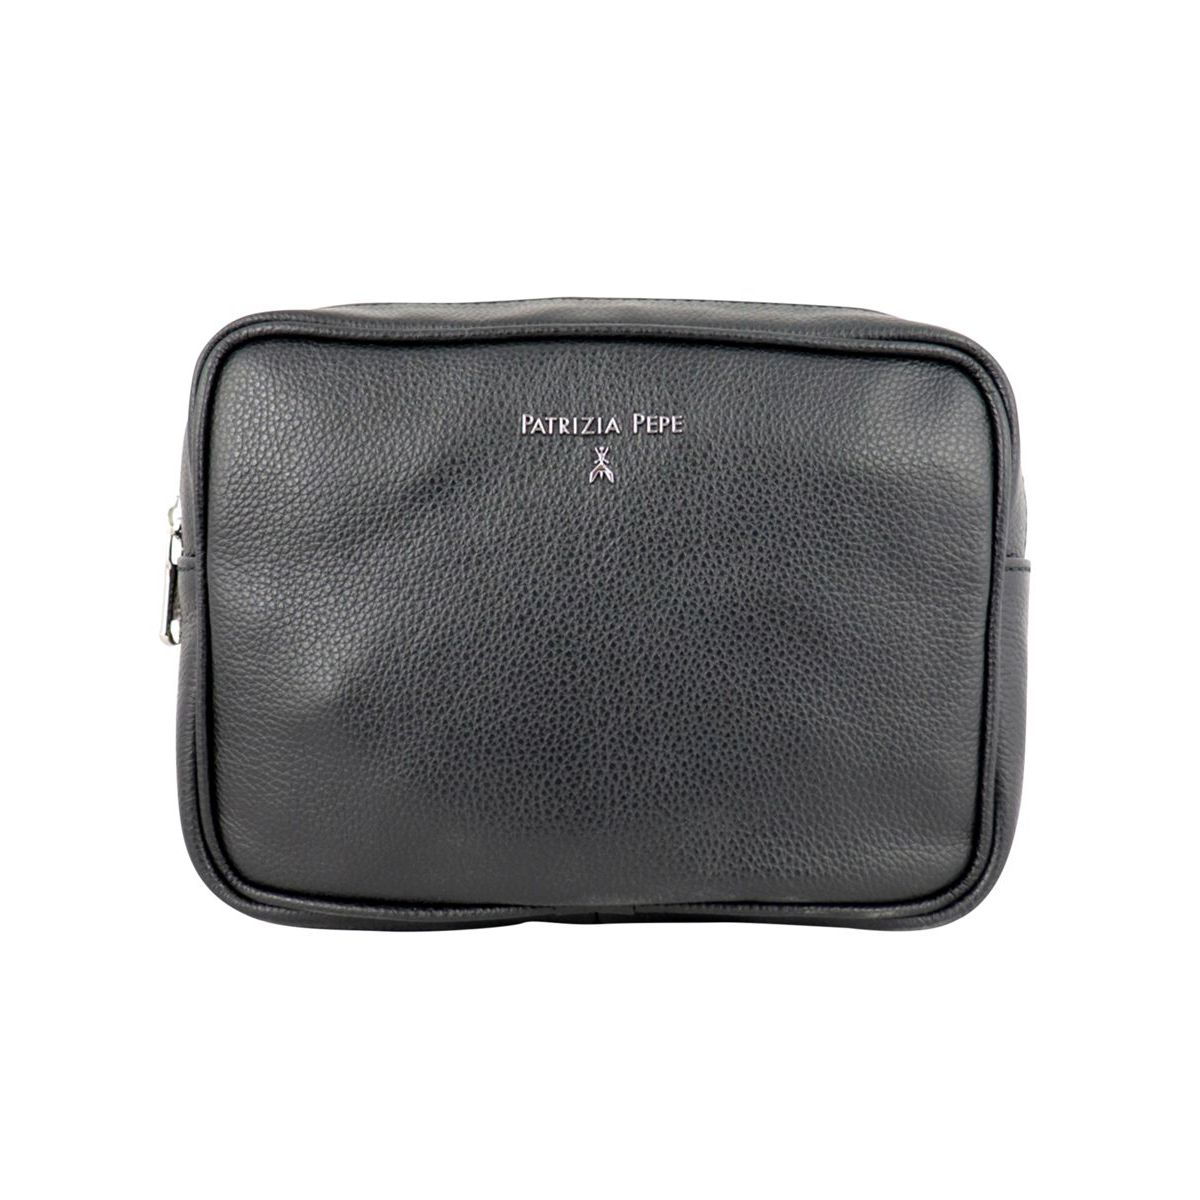 Beauty in textured leather with logo Black Patrizia Pepe